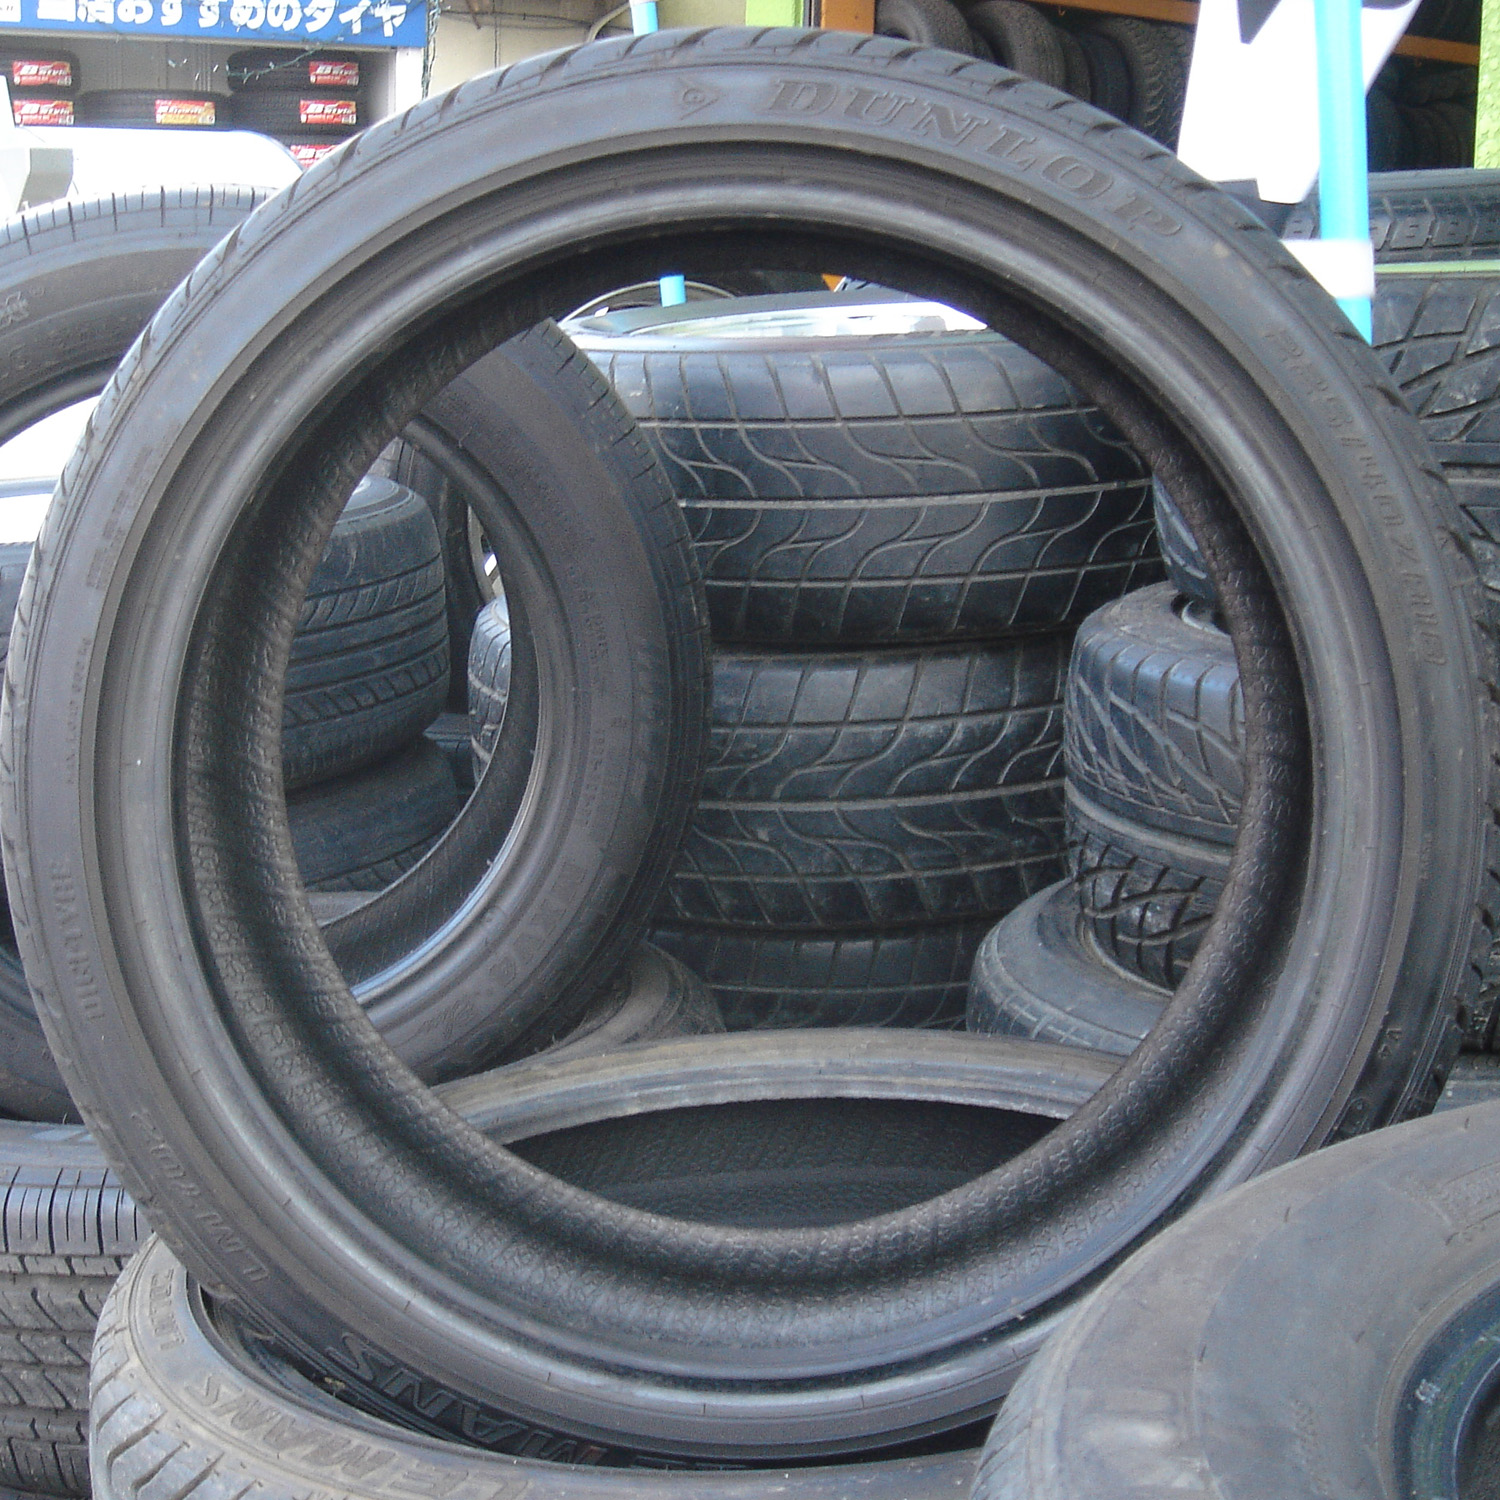 Tire Wikiwand